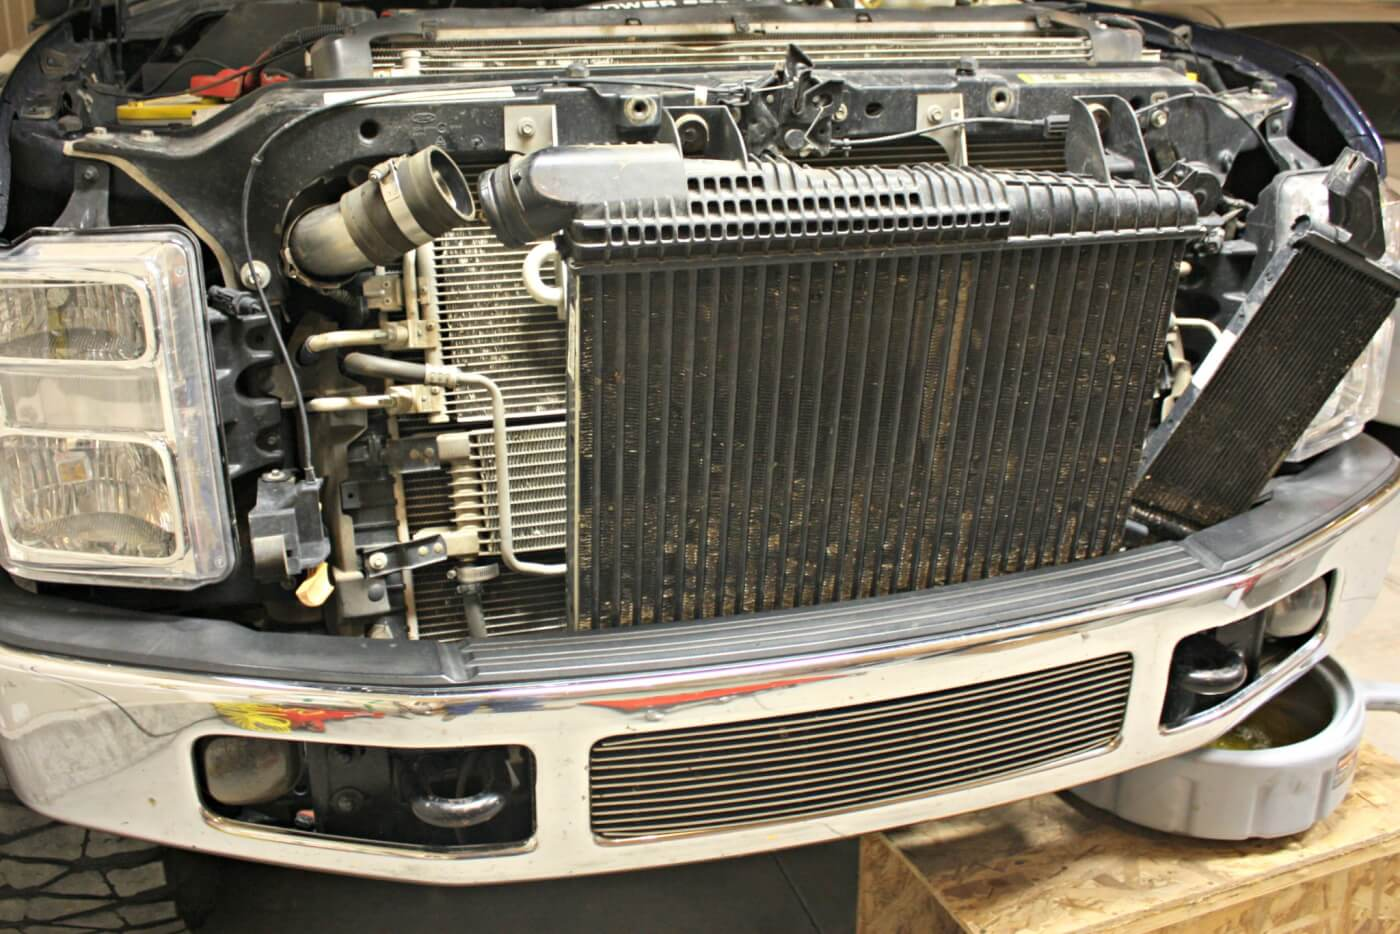 5. If there's a cooler attached to the driver's side of the intercooler, remove it as well. The intercooler can be lifted straight up out of its lower supports. With the intercooler removed, the transmission cooler and A/C condenser can be moved aside.